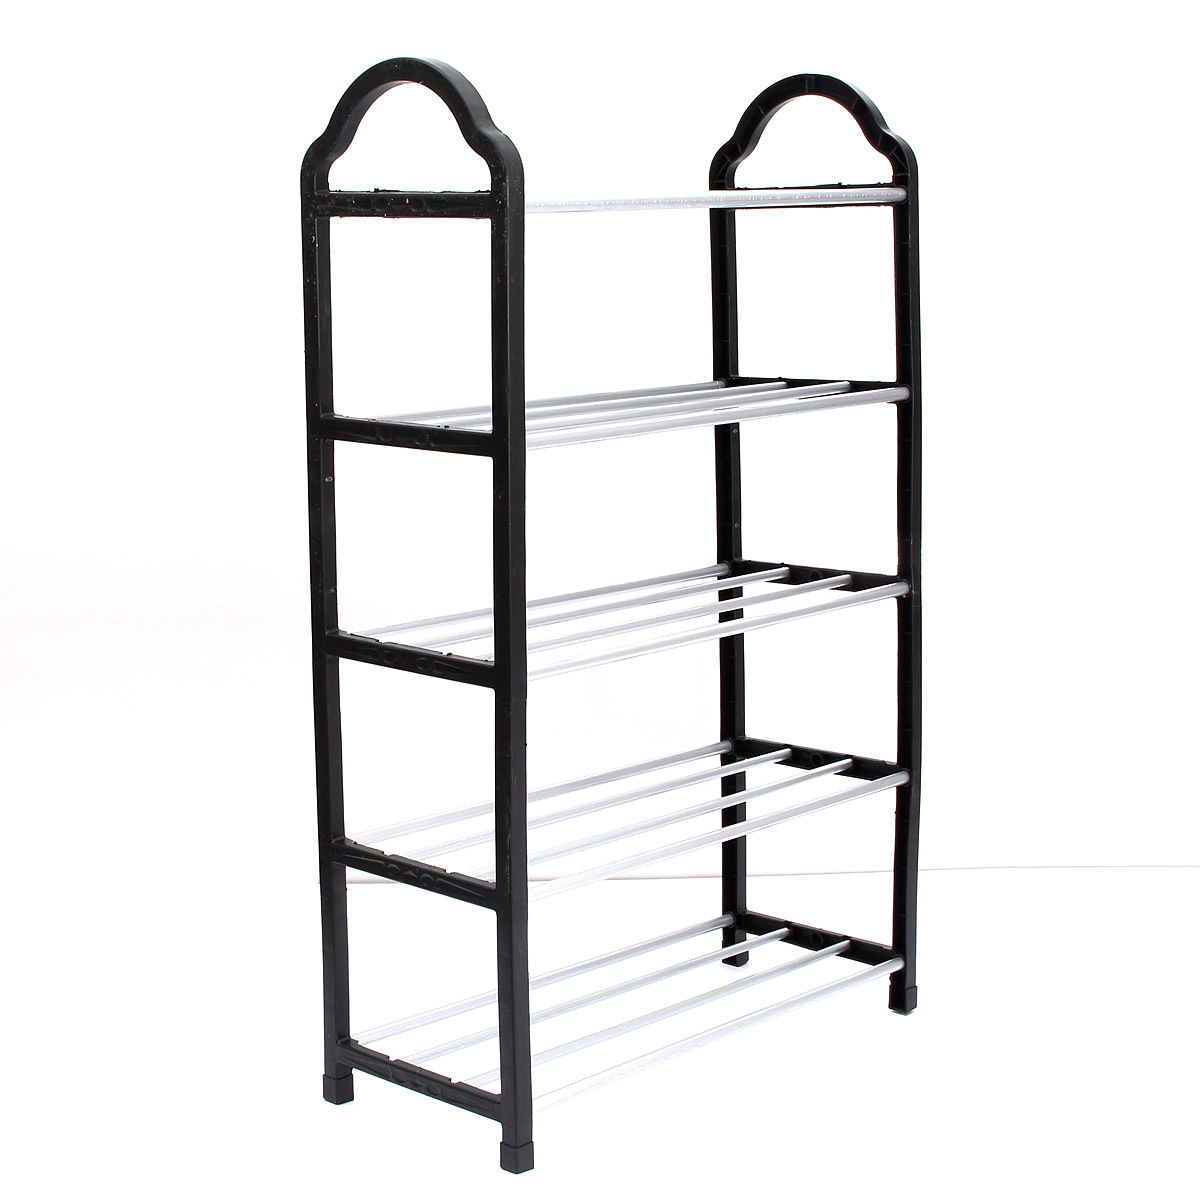 PHFU 5 Tier Home Storage Organizer Cabinet Shelf Space Saving Shoe Tower Rack Stand Black nocm shoe rack free standing adjustable organizer space saving black 6 tier